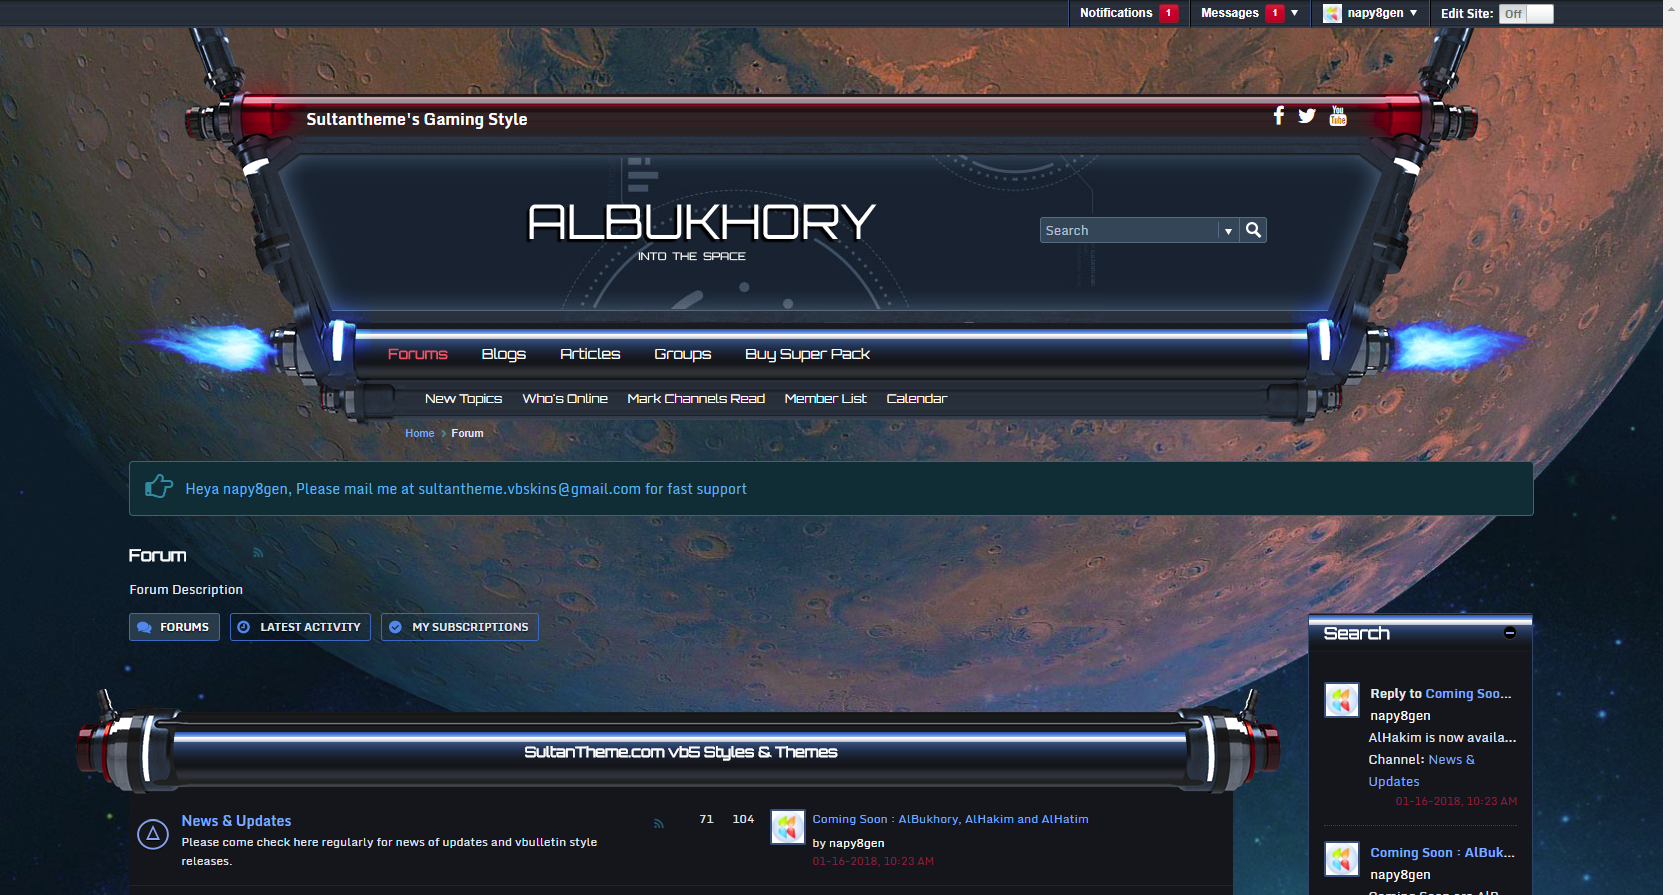 bukhory - 3 new vb5 themes released: alBukhory, alHakim and alHatim